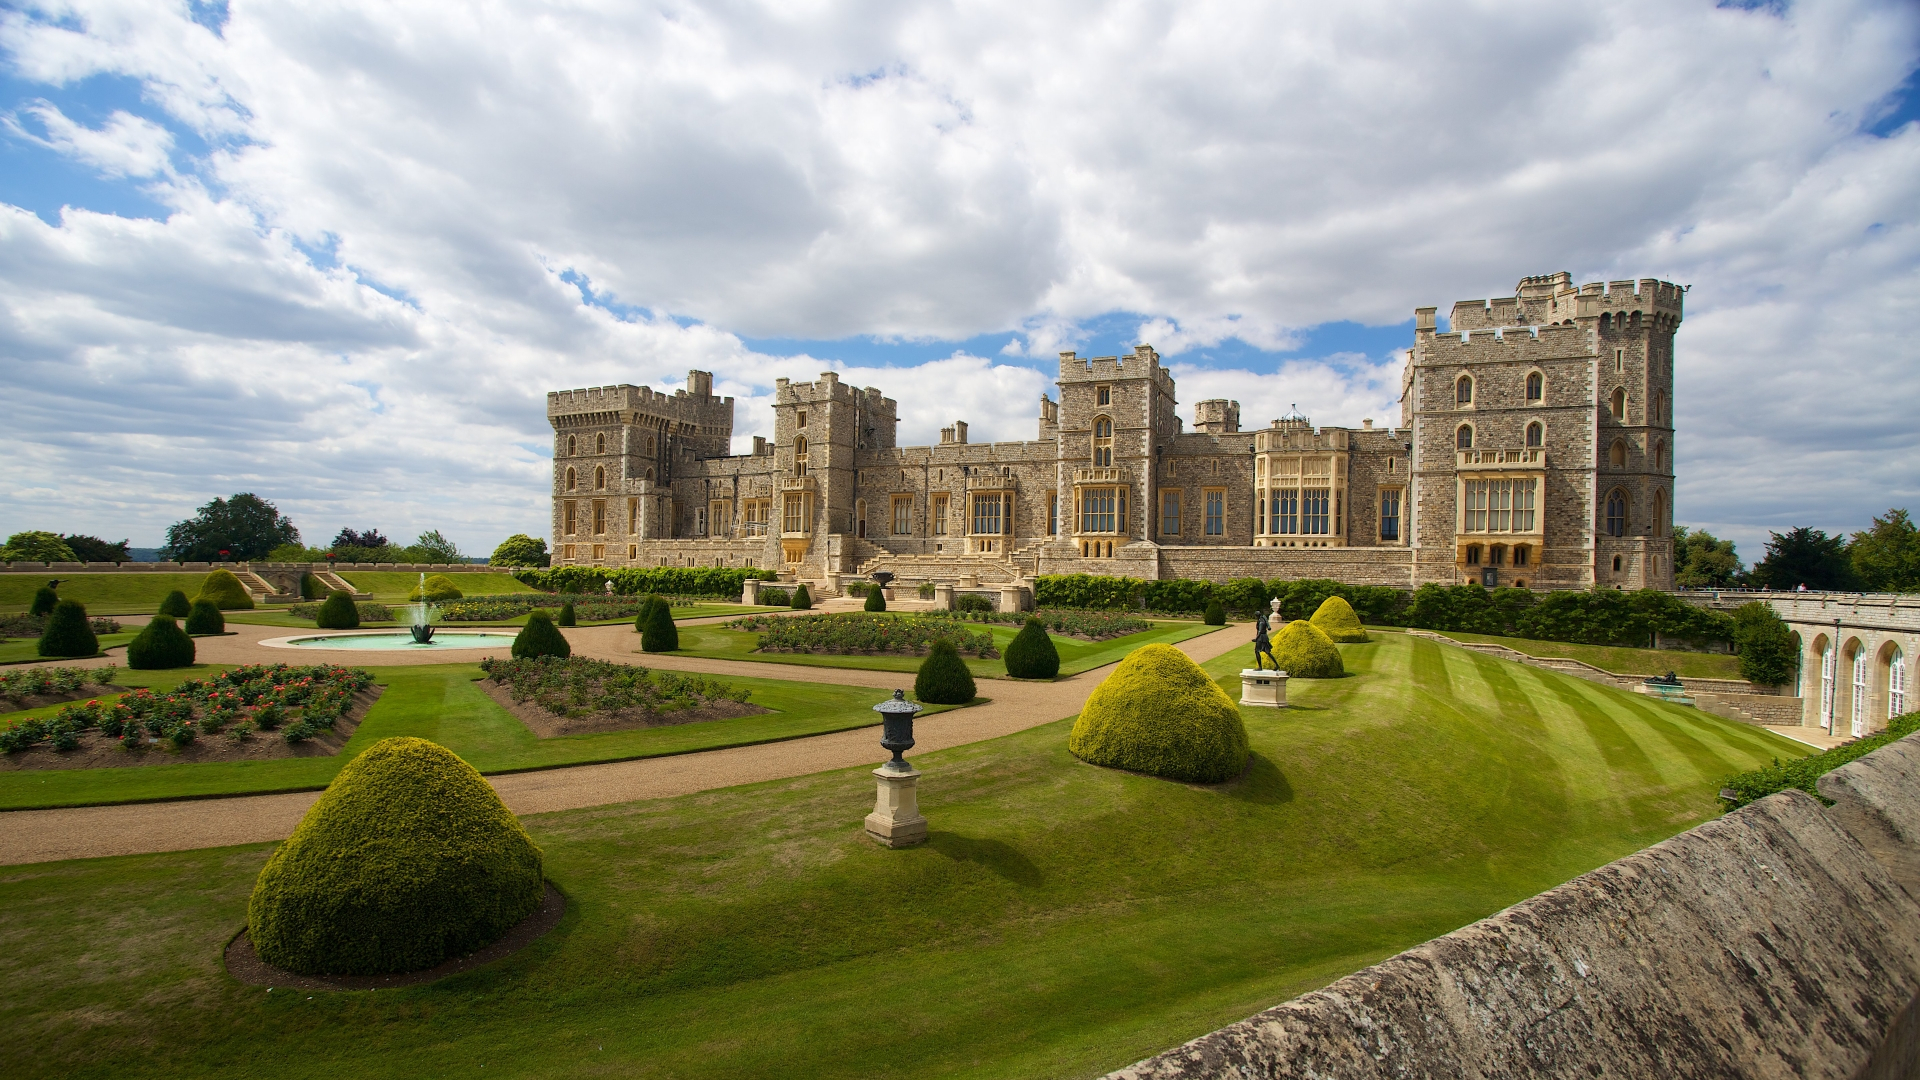 View of Windsor Castle and its manicured grounds.